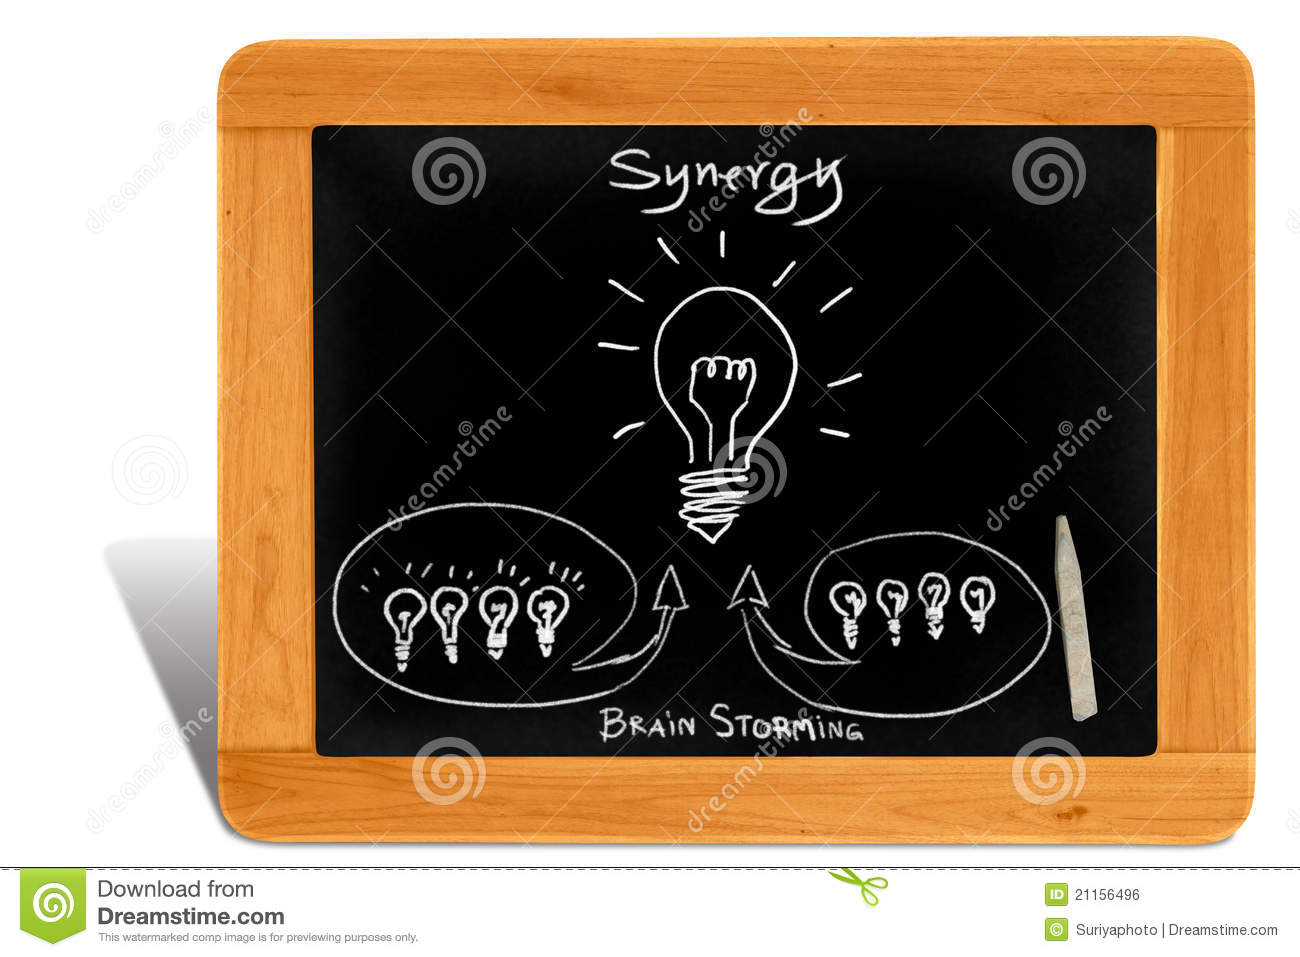 Classroom Design Study ~ Synergy idea by brain storming royalty free stock image